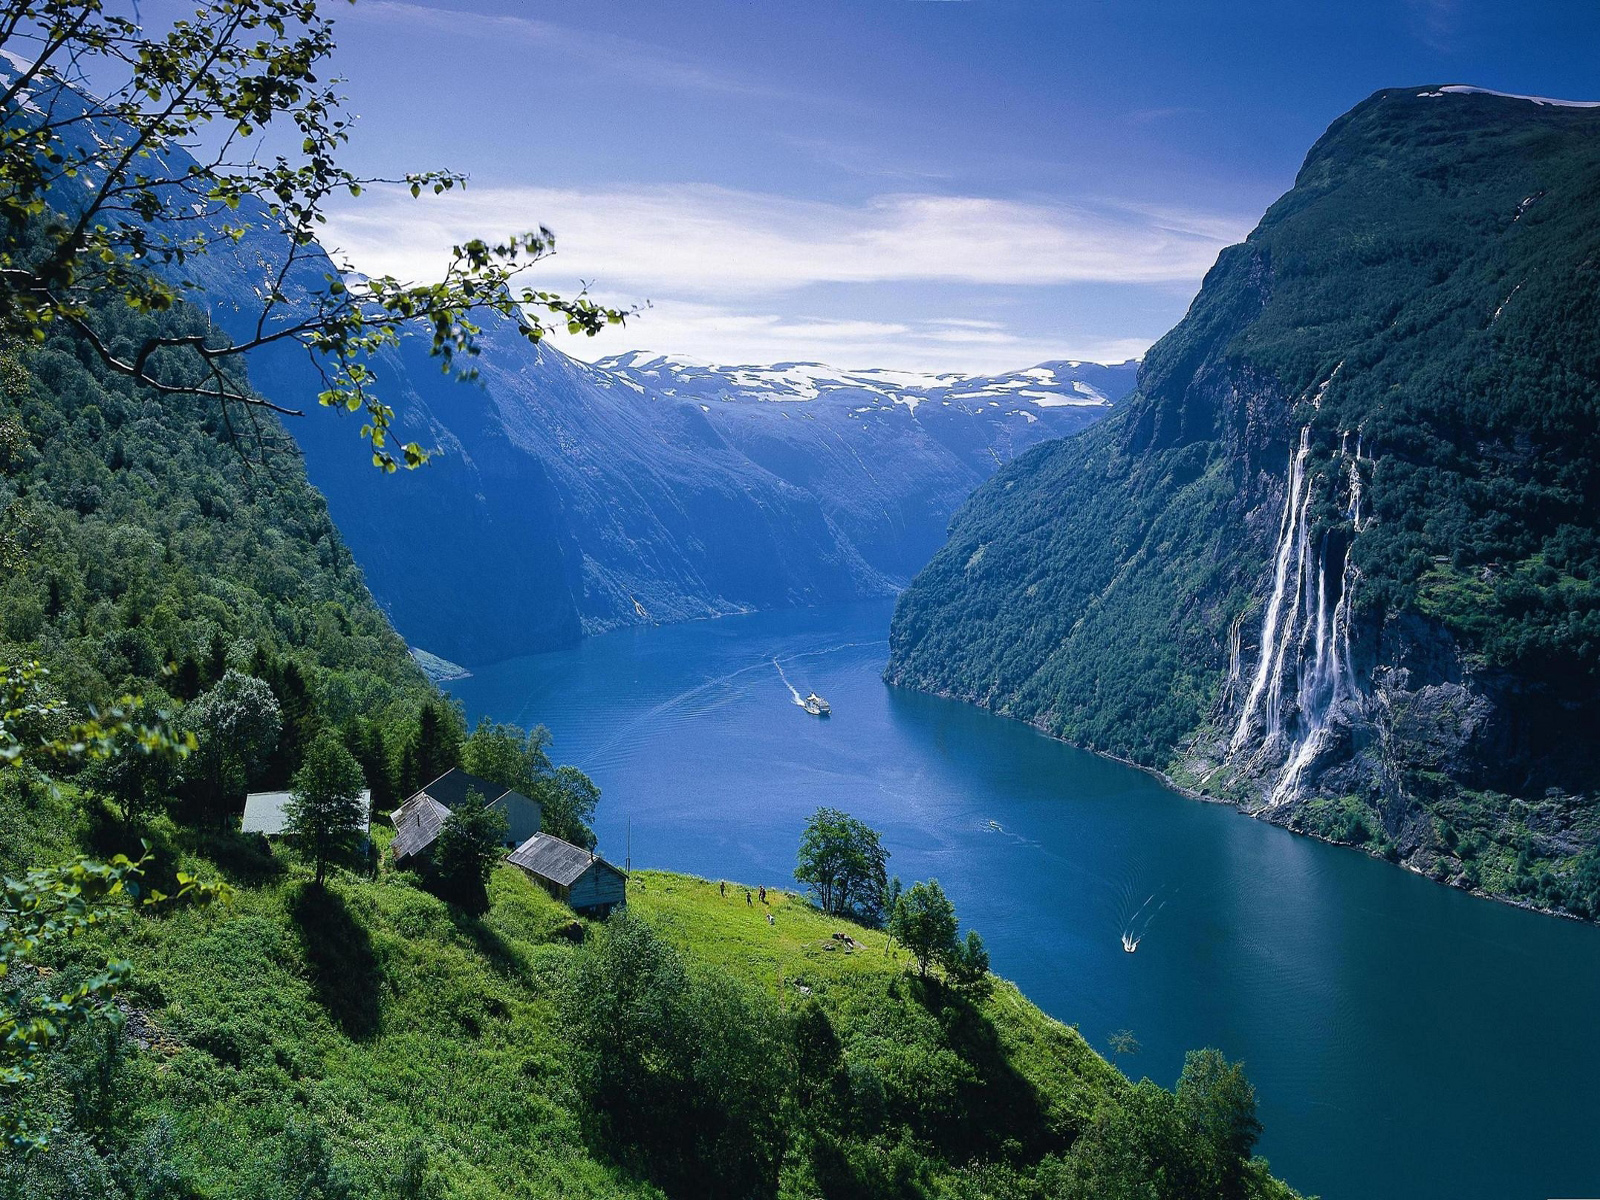 http://www.prasannaholidays.com/wp-content/uploads/2014/06/Cottages-in-the-Fjords-Norway-wallpaper_7538.jpg